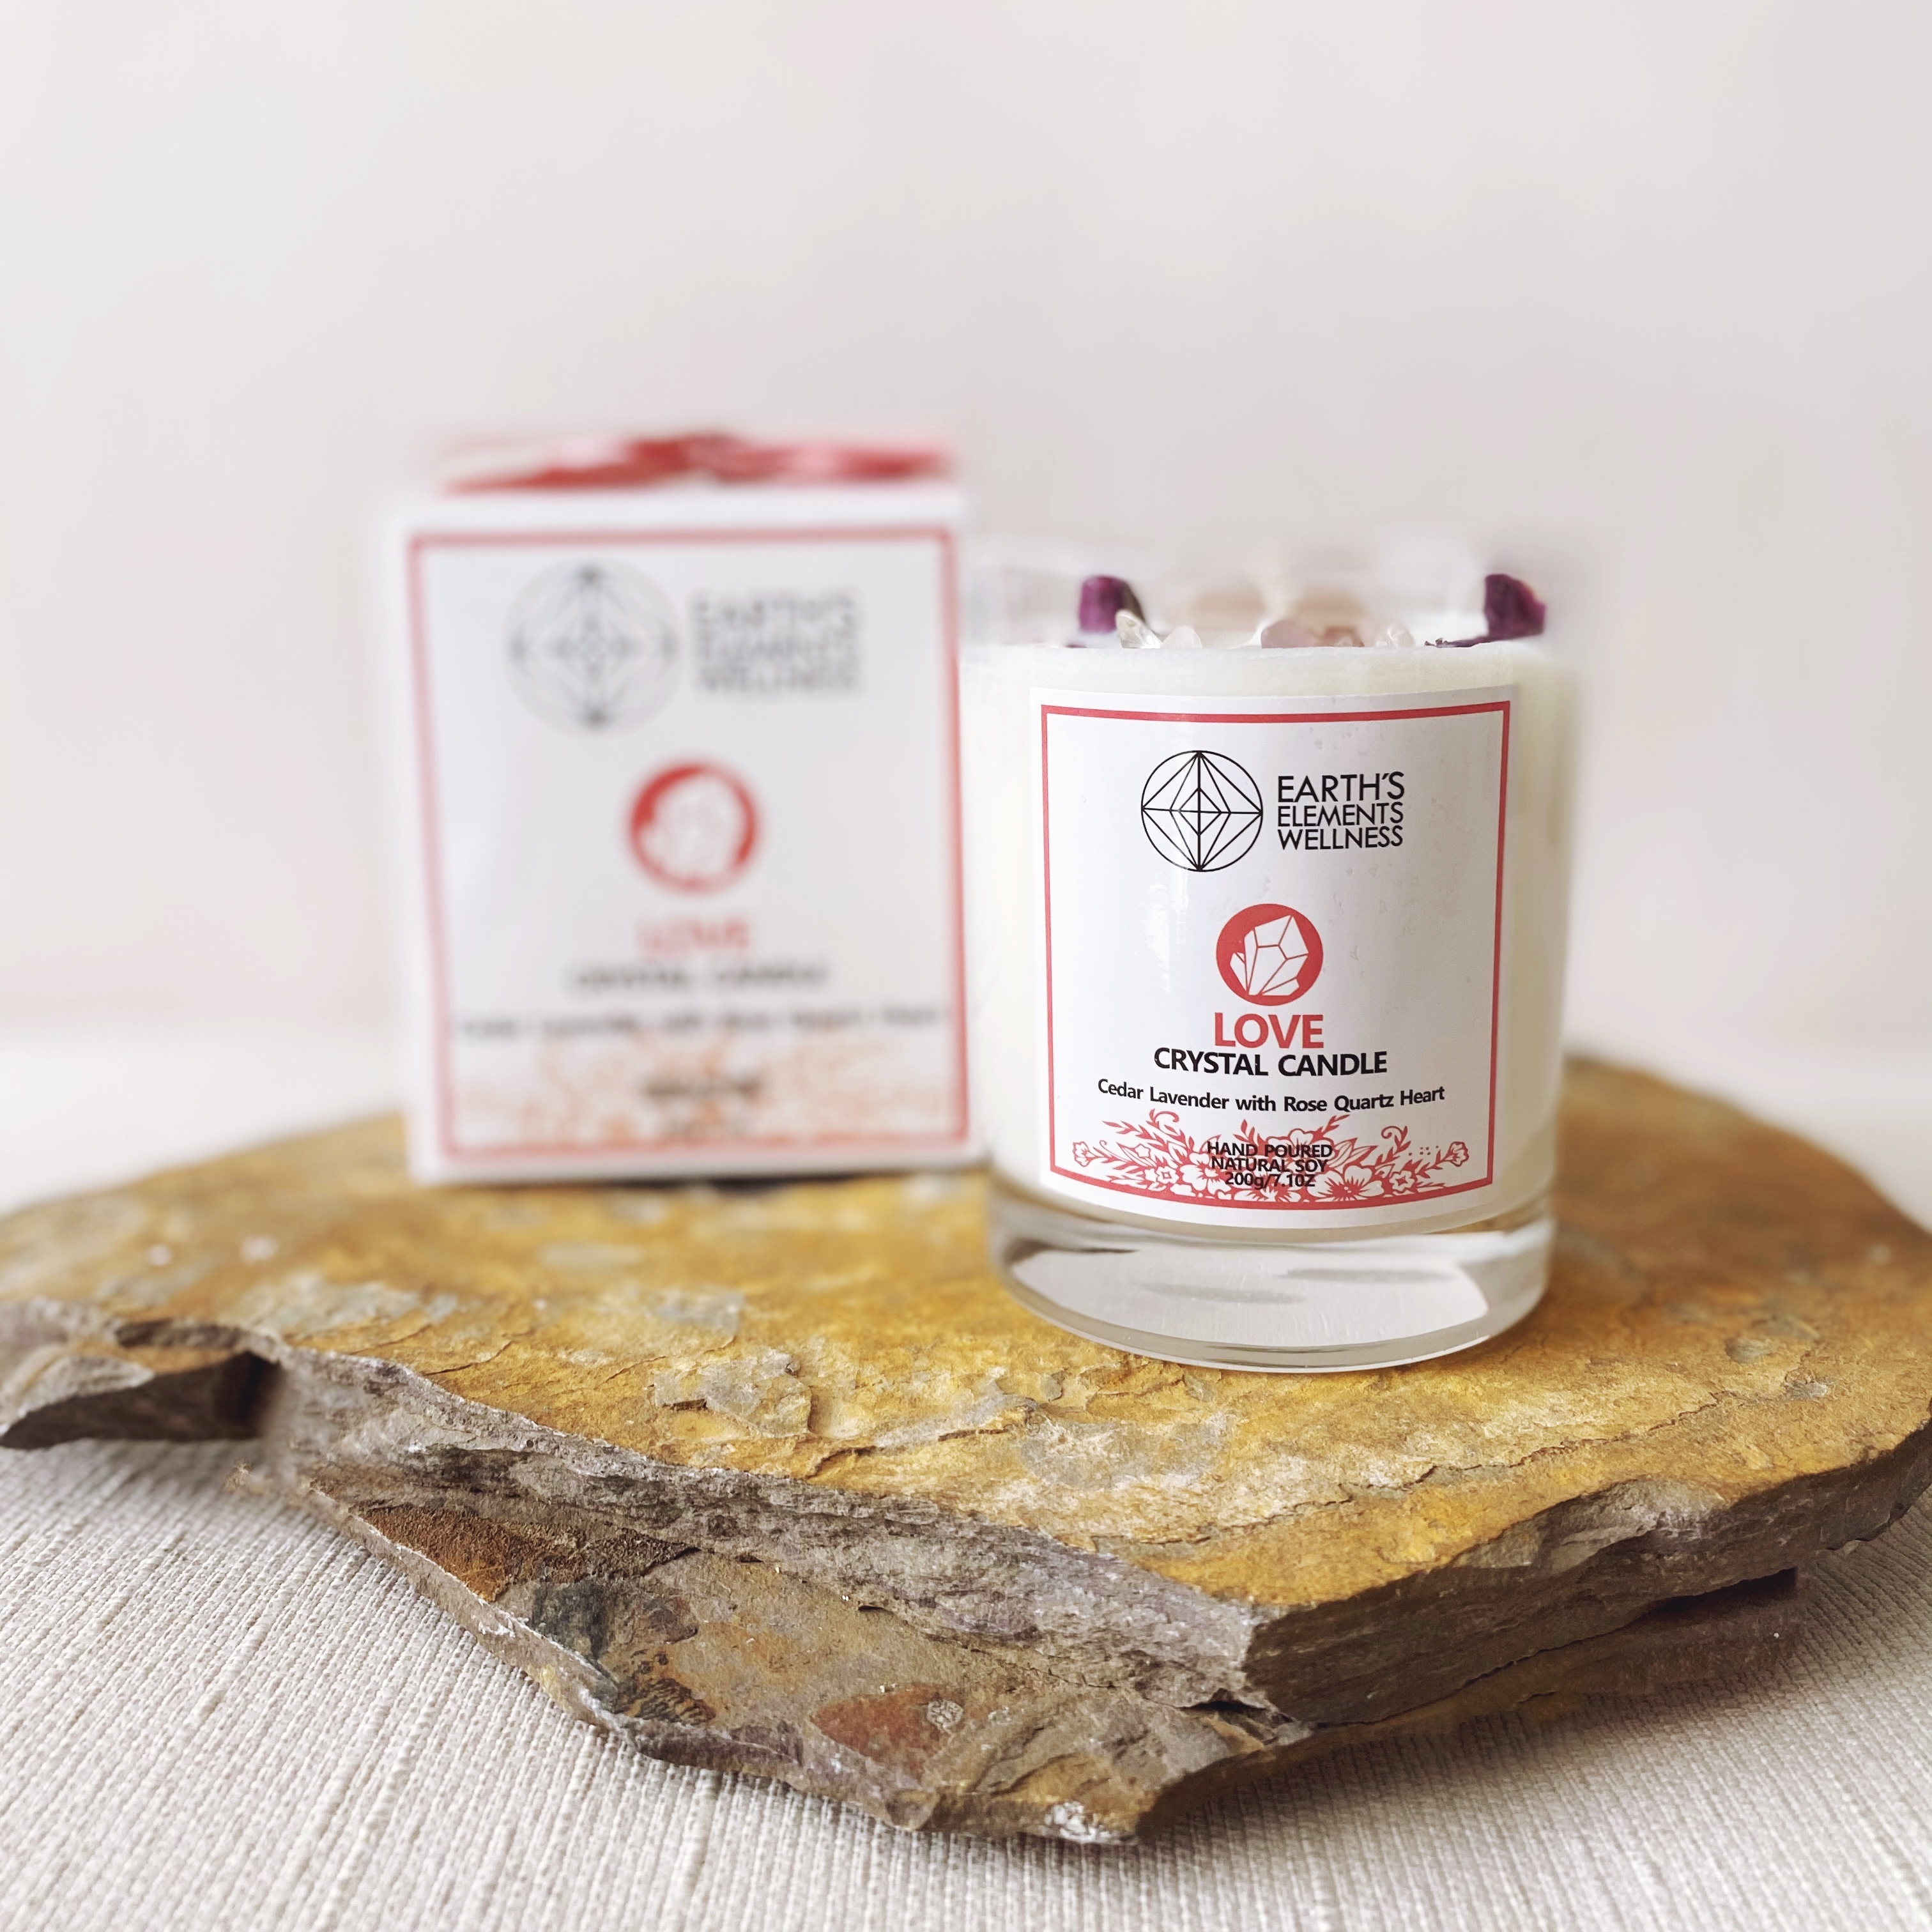 candle, candles, scented candles, essential oils, crystals, soy wax, long burning